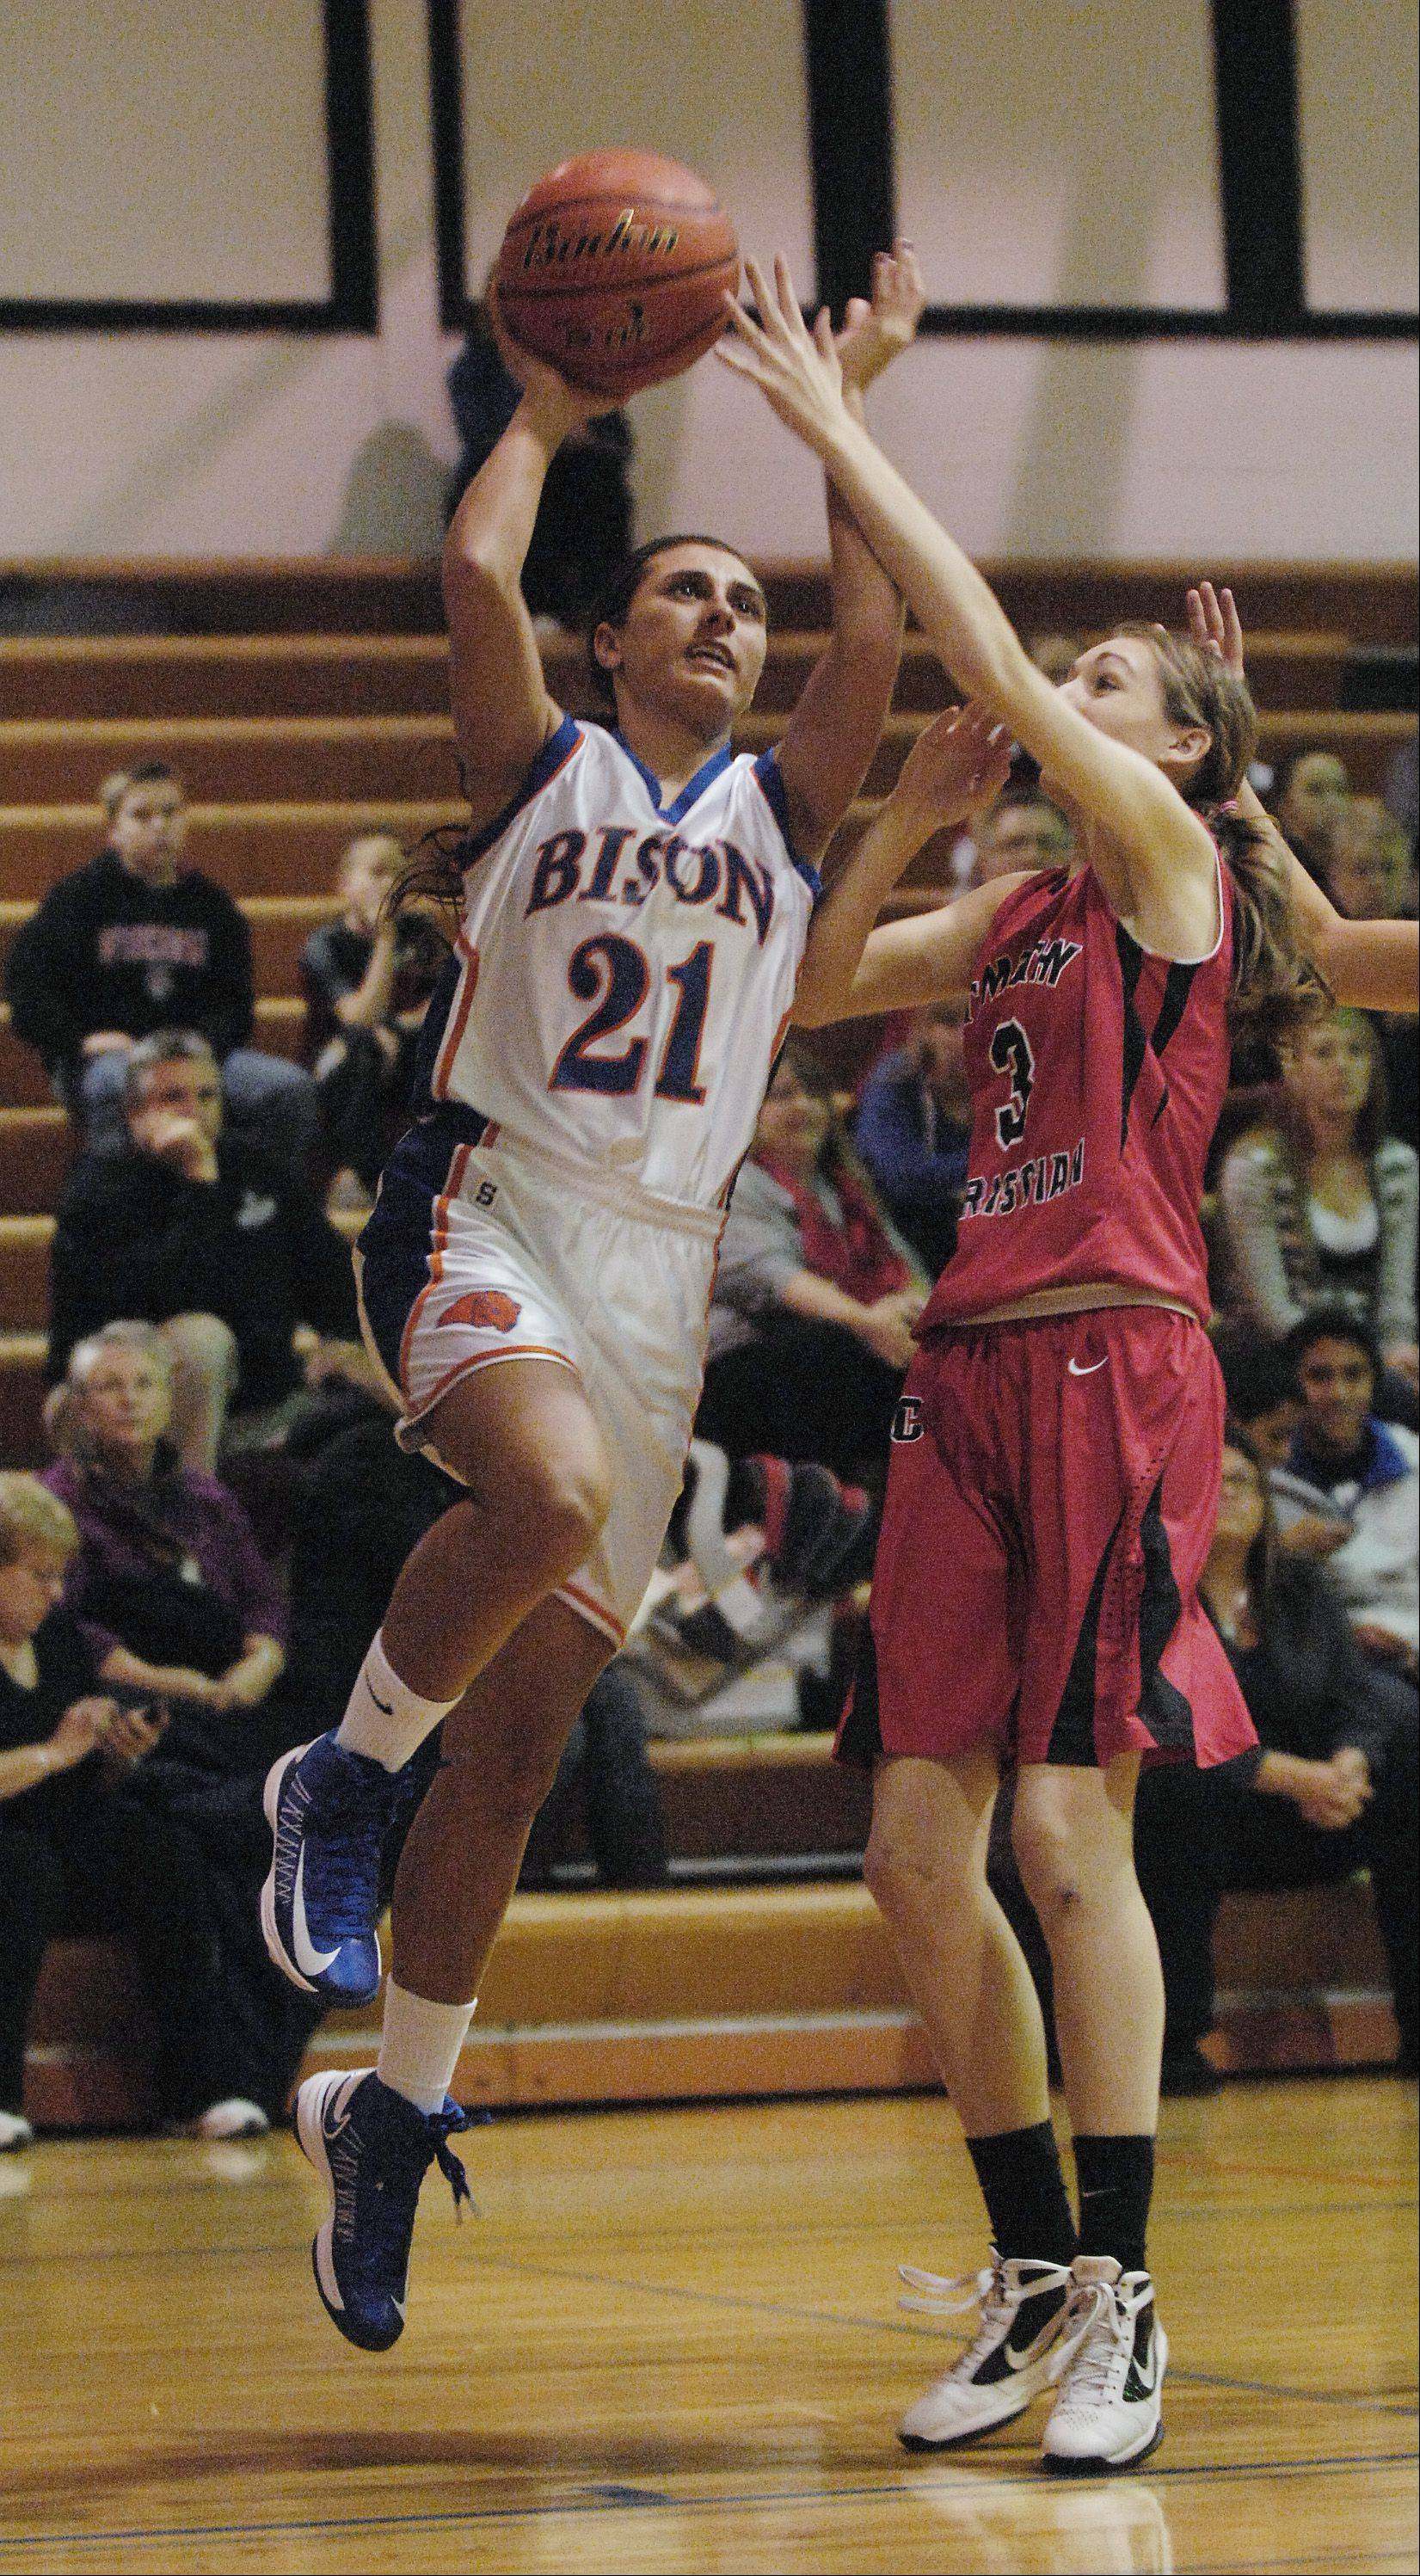 Rachael Leschewski of Fenton High School heads to the basket past Brittany Scheidt of Timothy Christian.